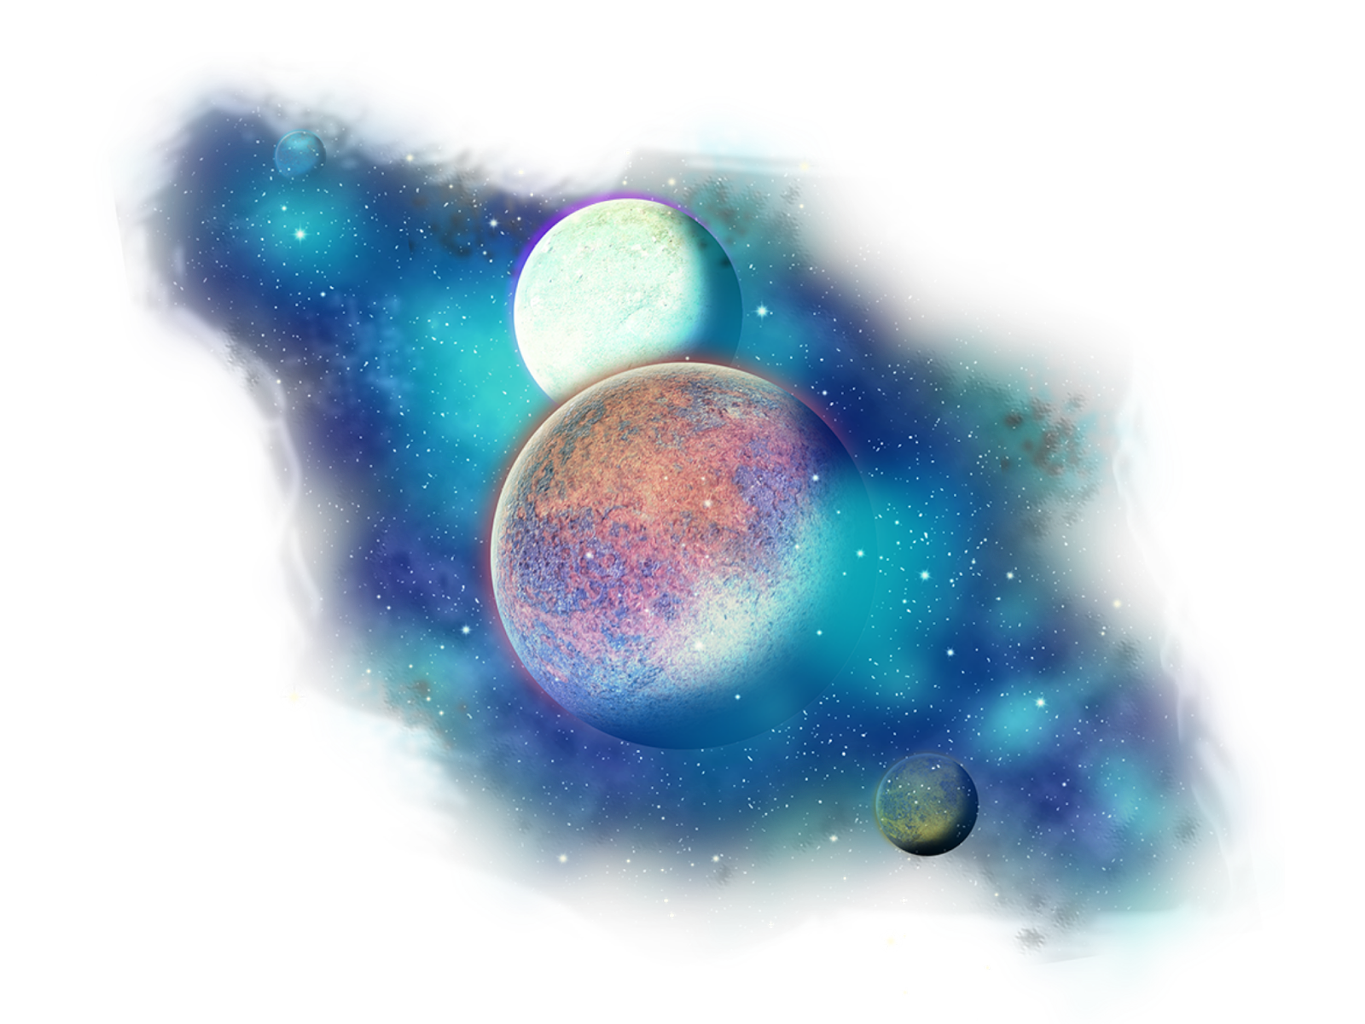 galaxies clipart galaxy collision png transparent background image